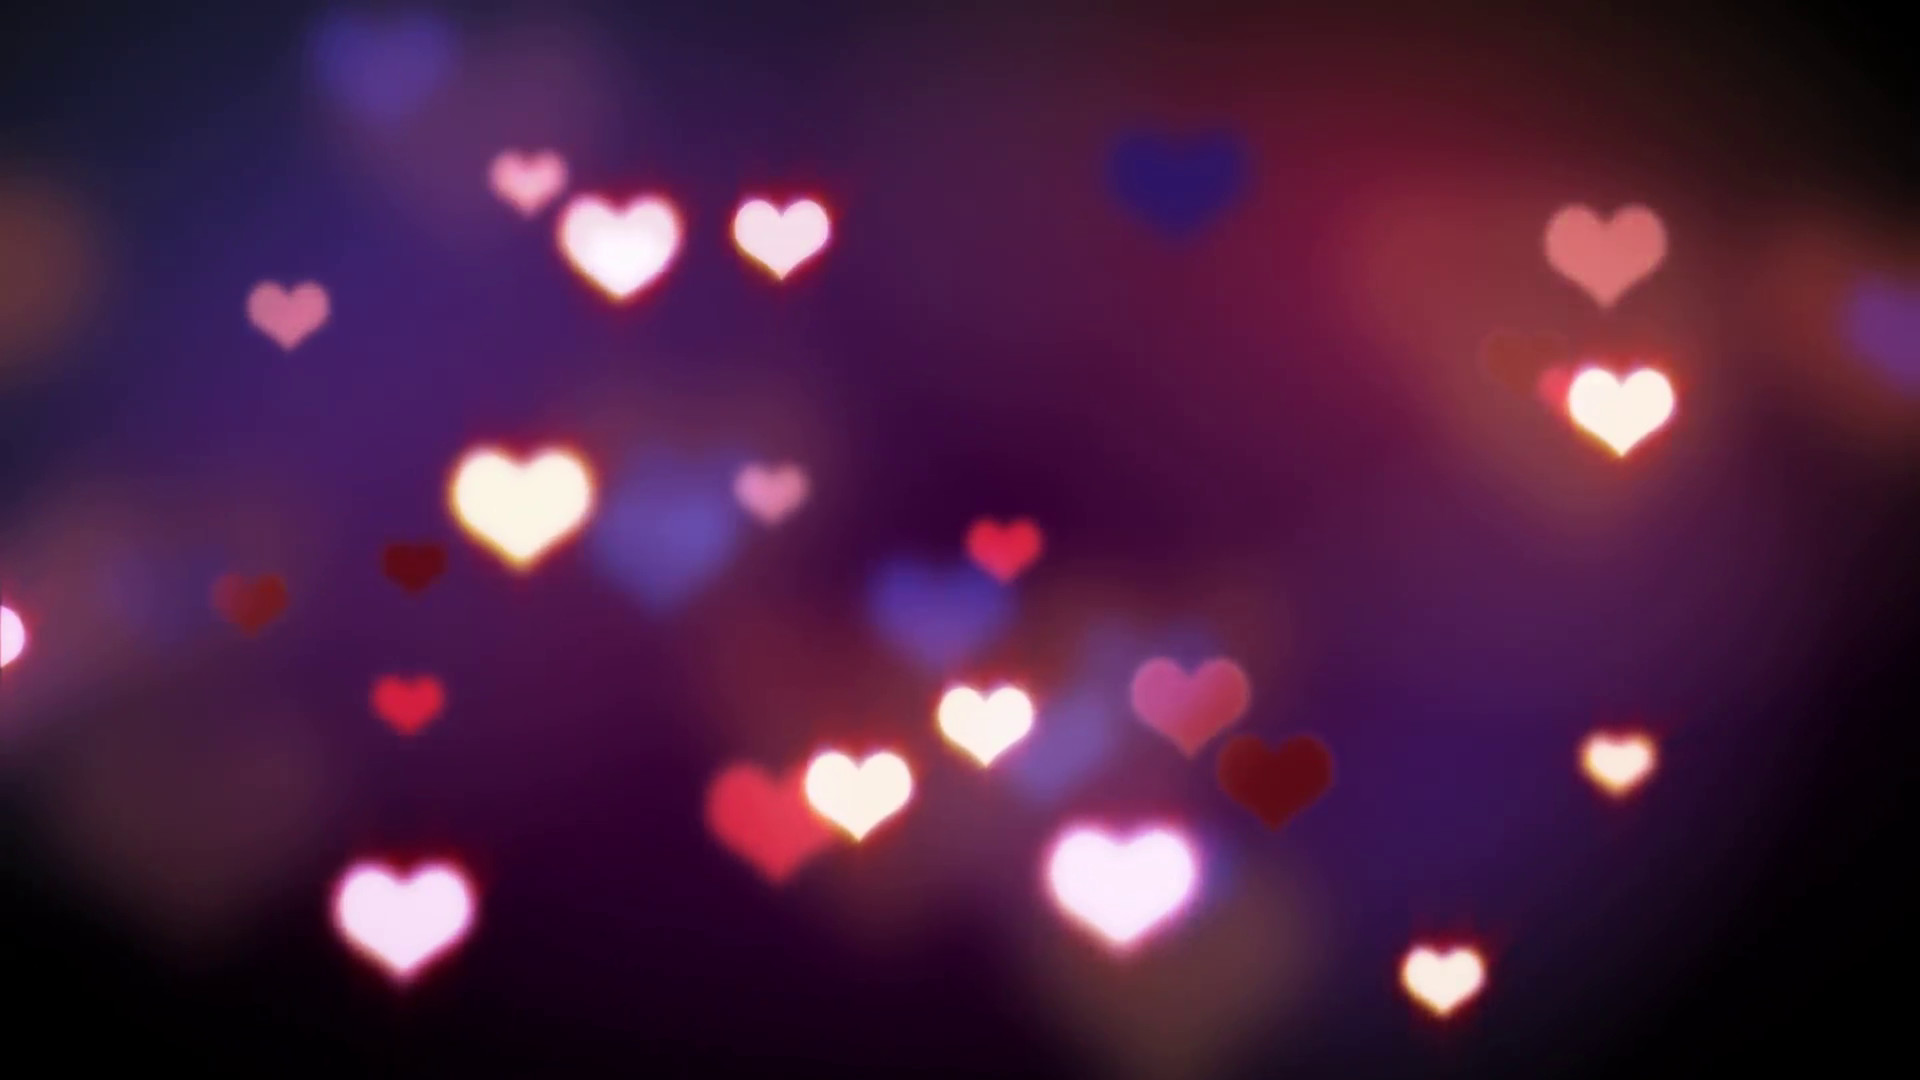 Love Heart Wallpaper Hd Wallpapertag: Love Background Images ·① WallpaperTag